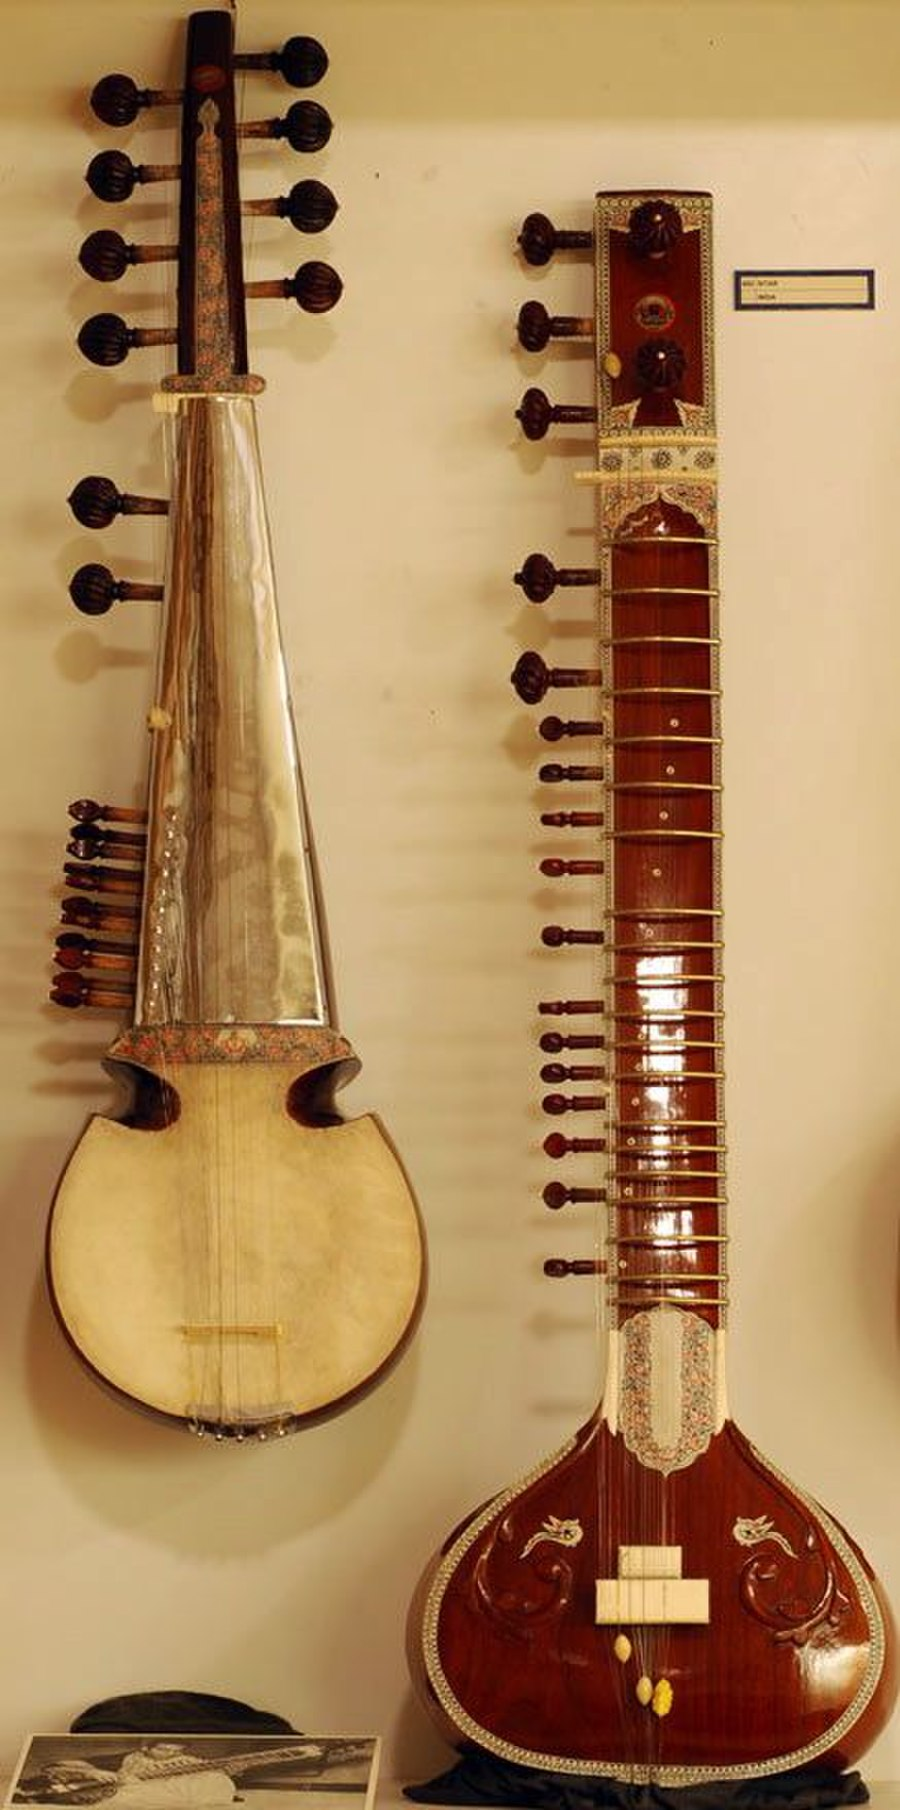 Sitar vs  Veena - What's the difference? | Ask Difference